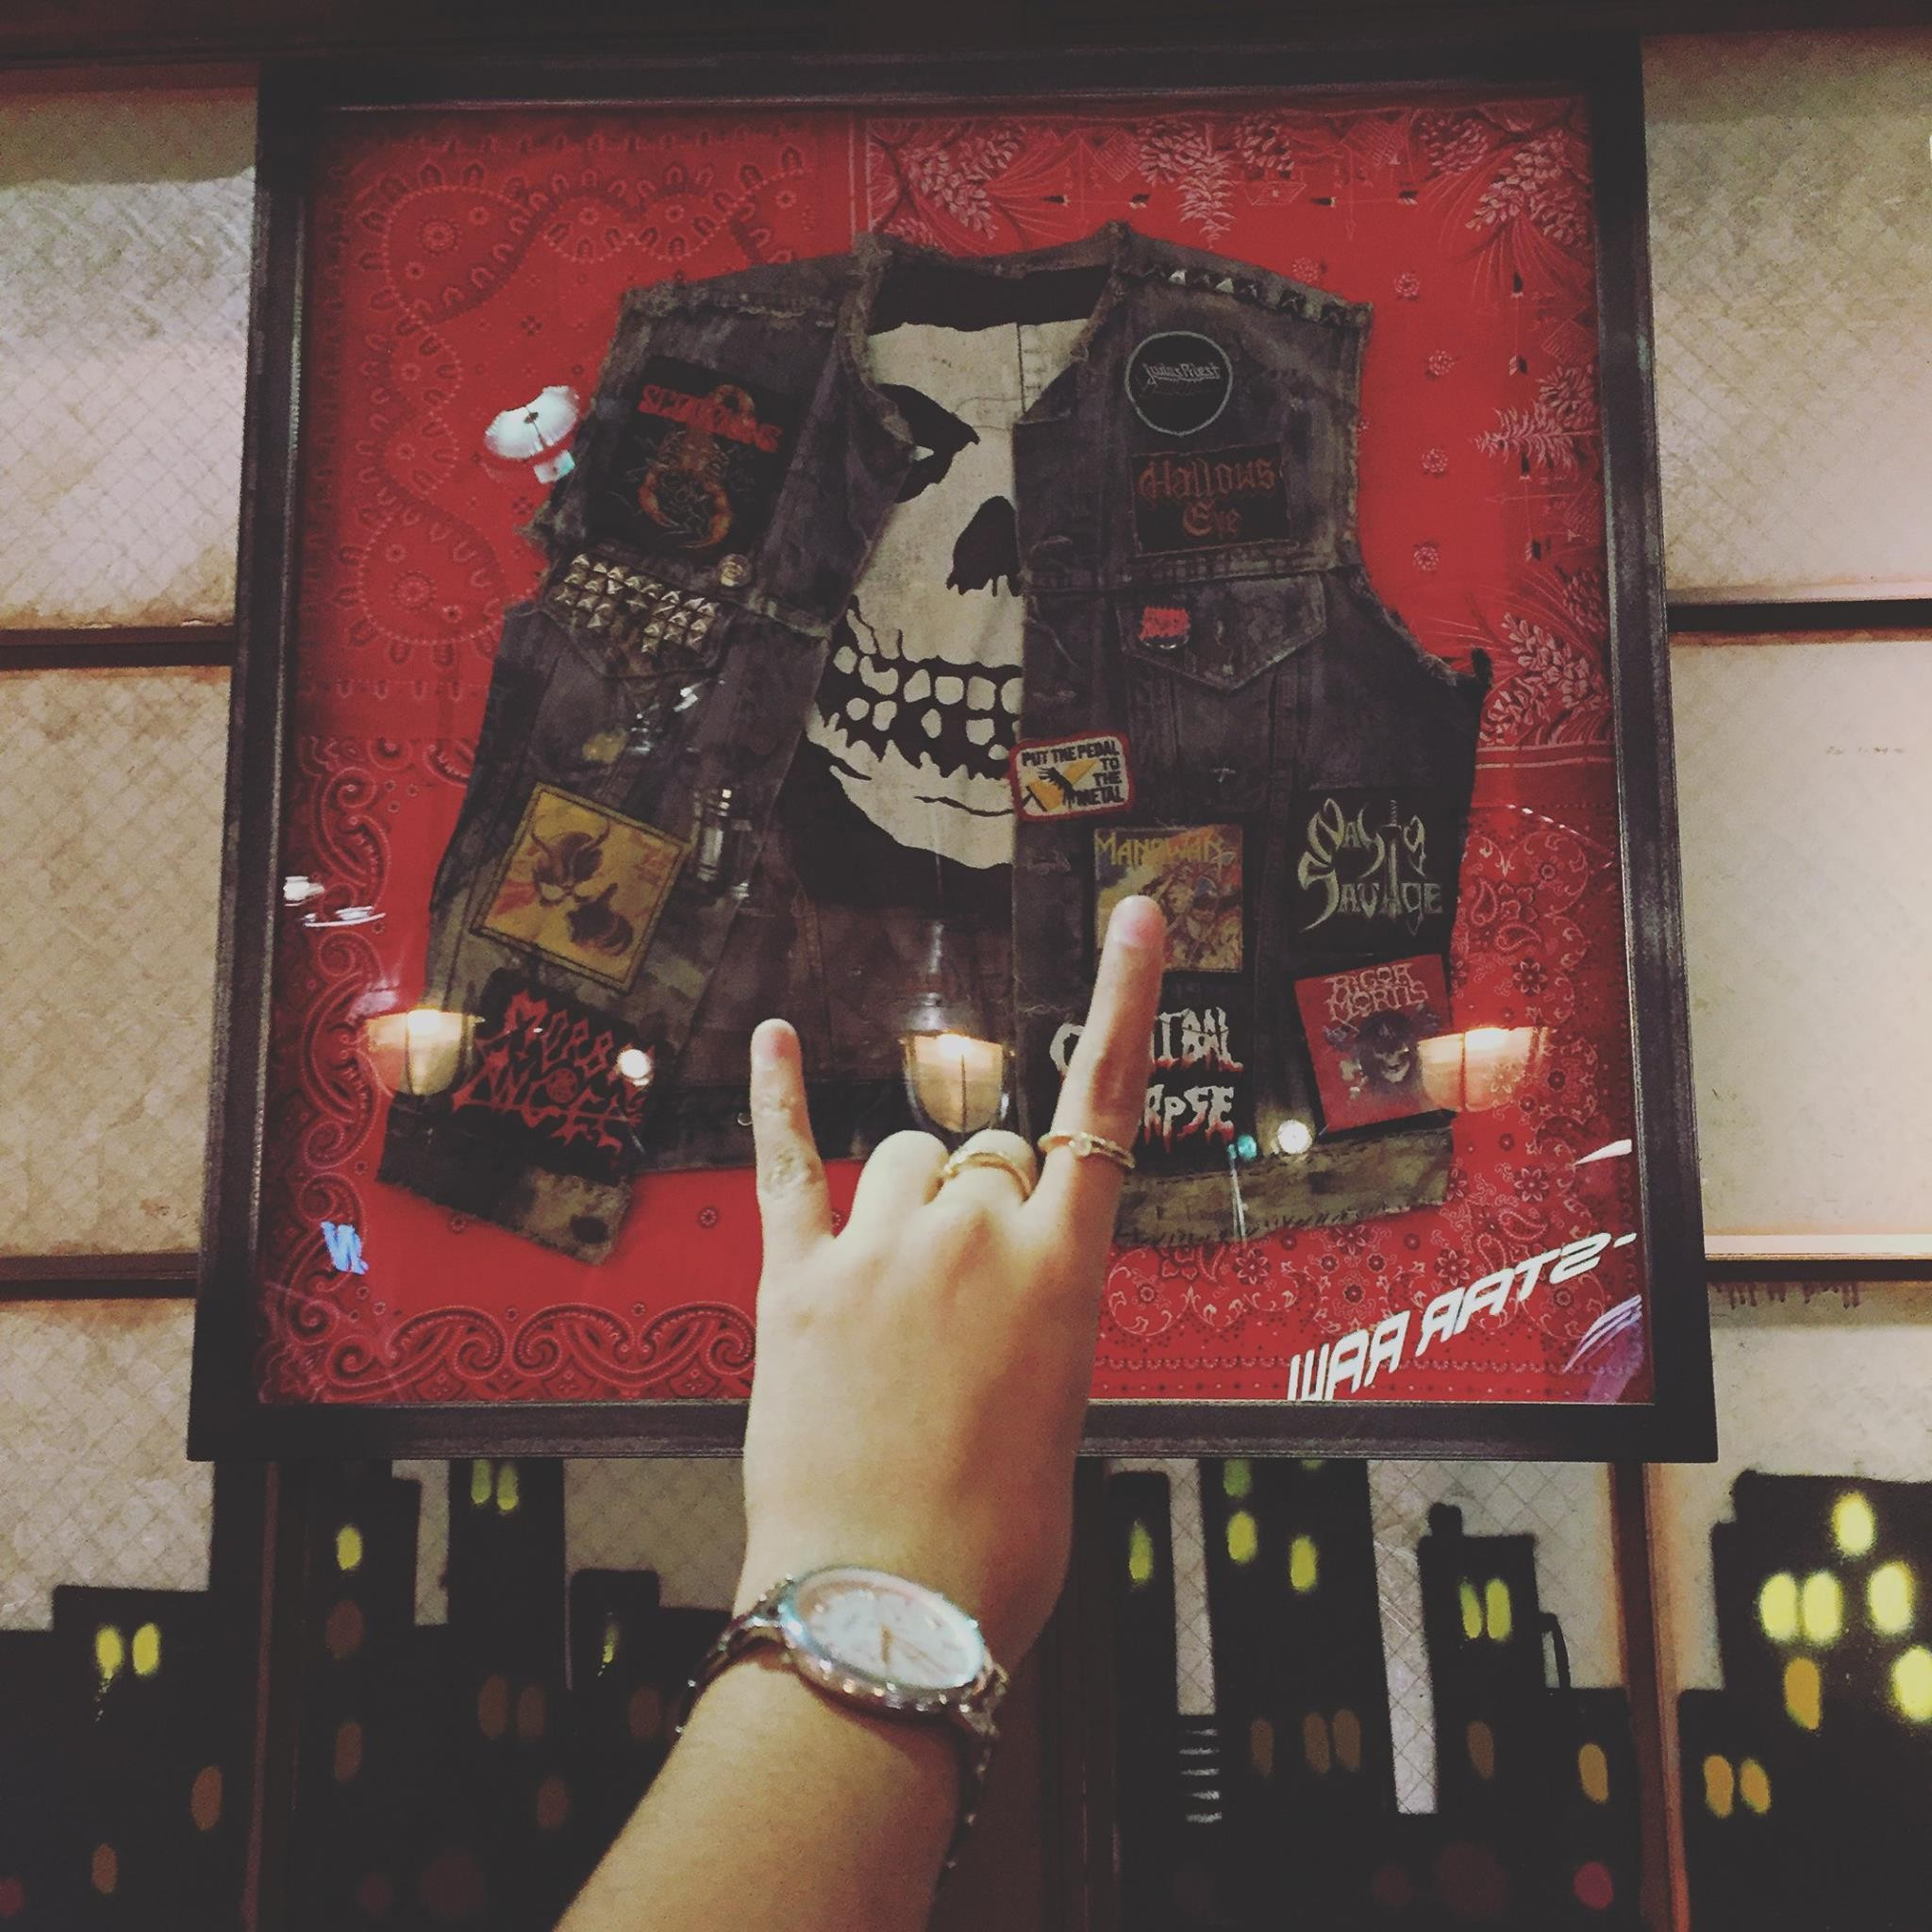 Oregon Metalheads Fabled Vest Appropriated By Macy's Display ... And He Wants Answers